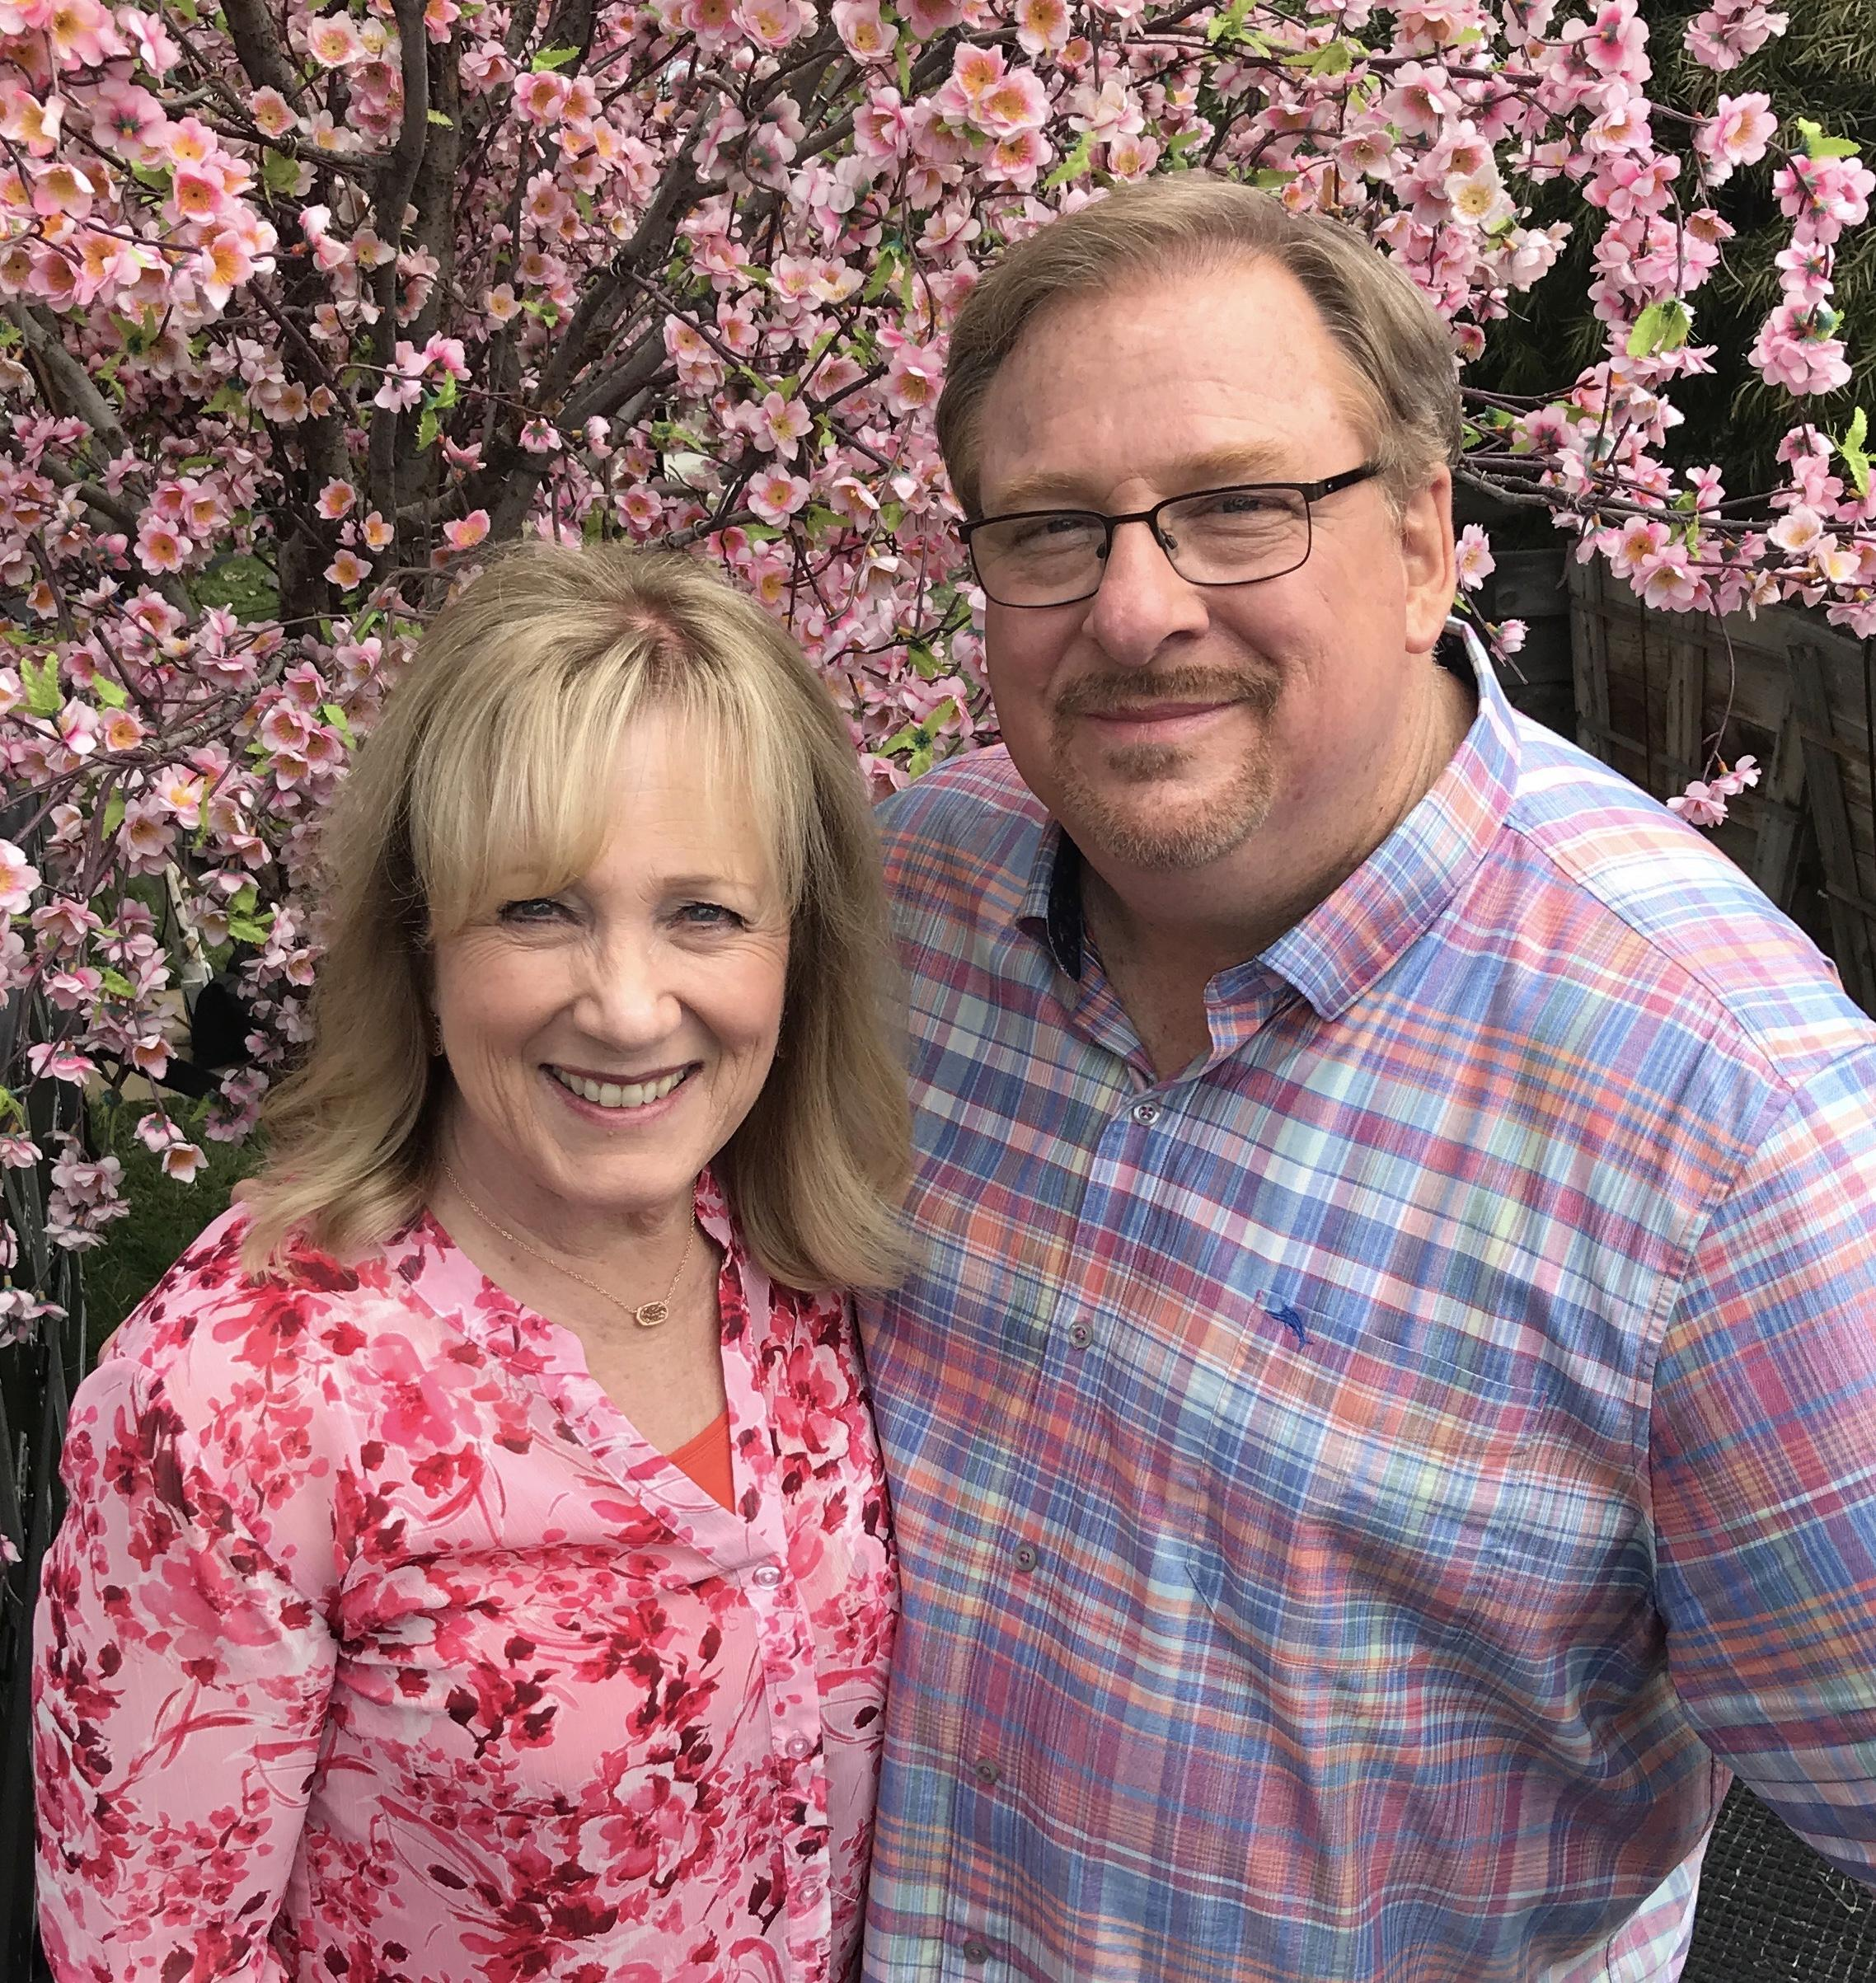 WATCH: Rick and Kay Warren Host Global Easter Prayer Call With T. D. Jakes, Brian Houston, Chris Tomlin and Other Christian Pastors and Worship Leaders from Around the World